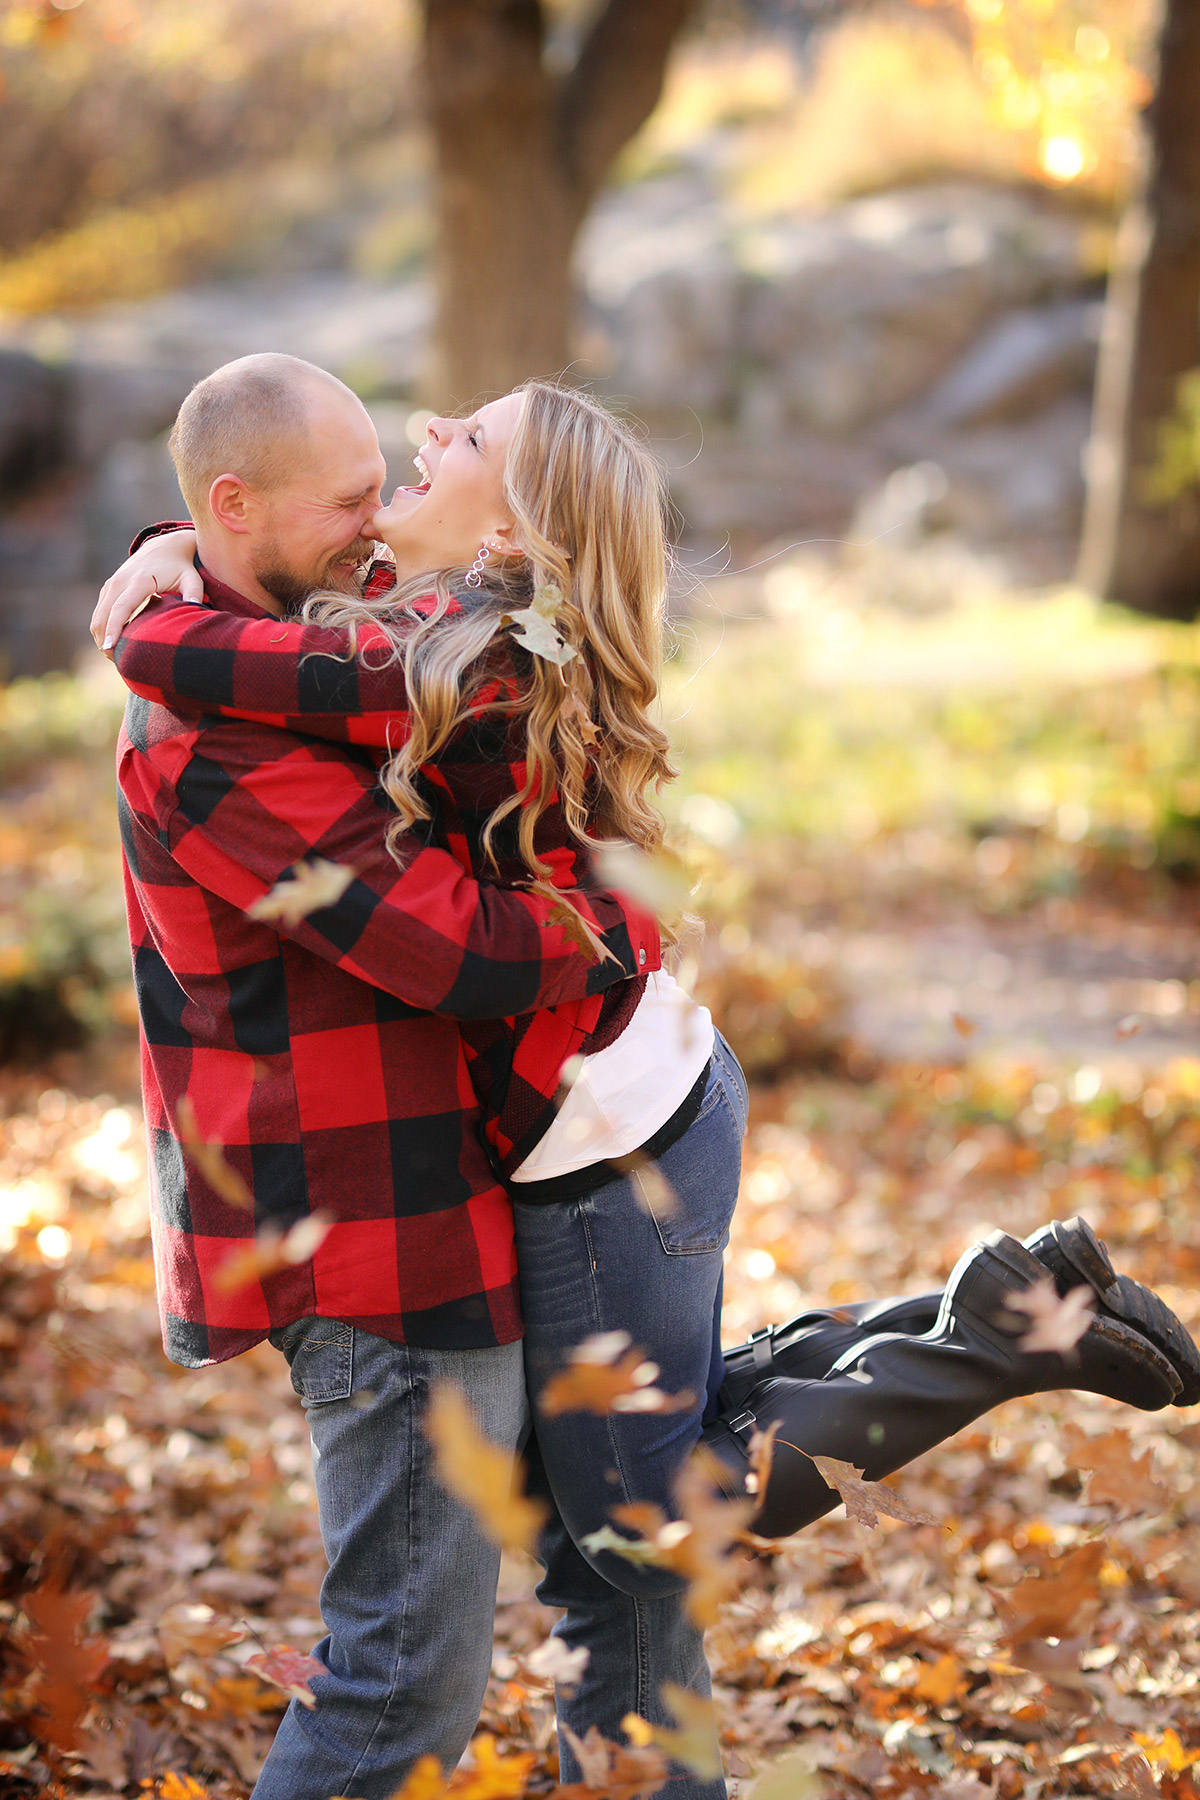 Vick-Photography-Engagement-Session-Fall-Autumn-Plaid-Laughing.jpg